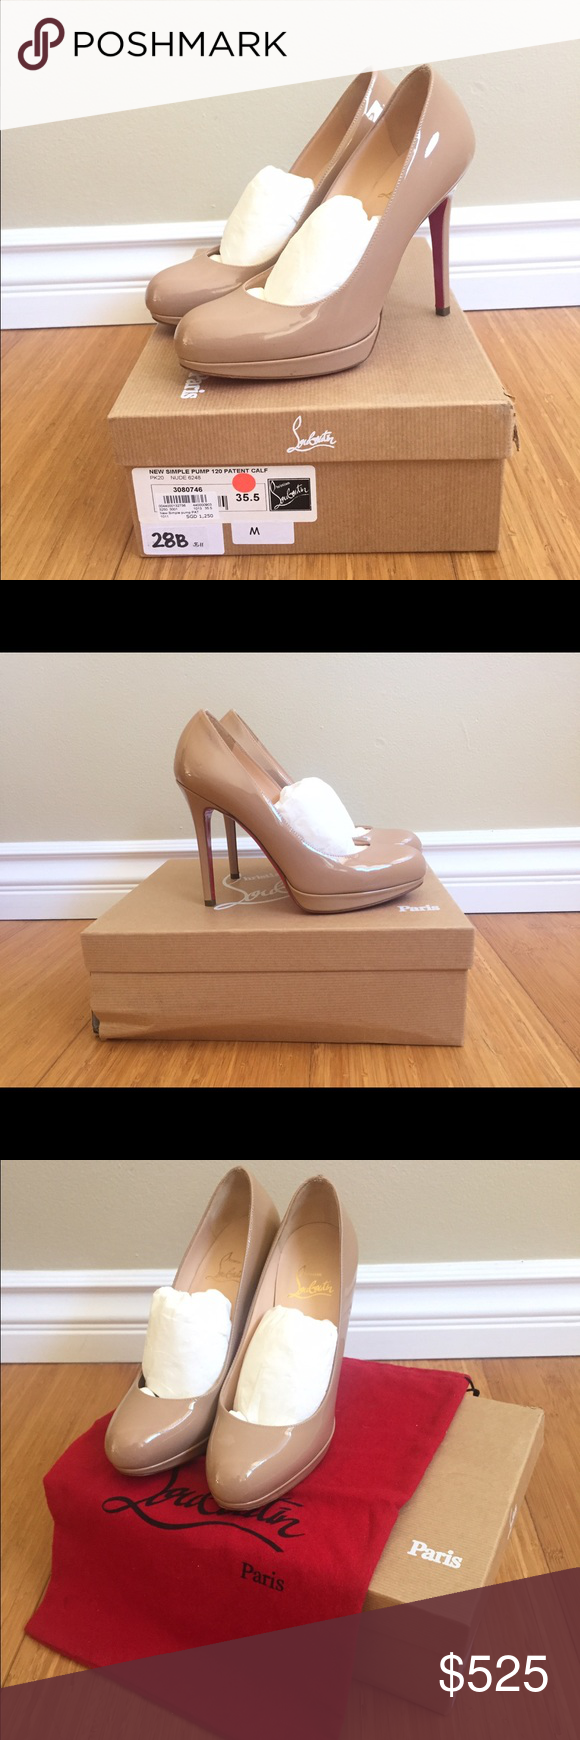 quality design 2d3b2 ec664 Christian Louboutin New Simple Pump 120 Nude Size 35.5 (US5 ...